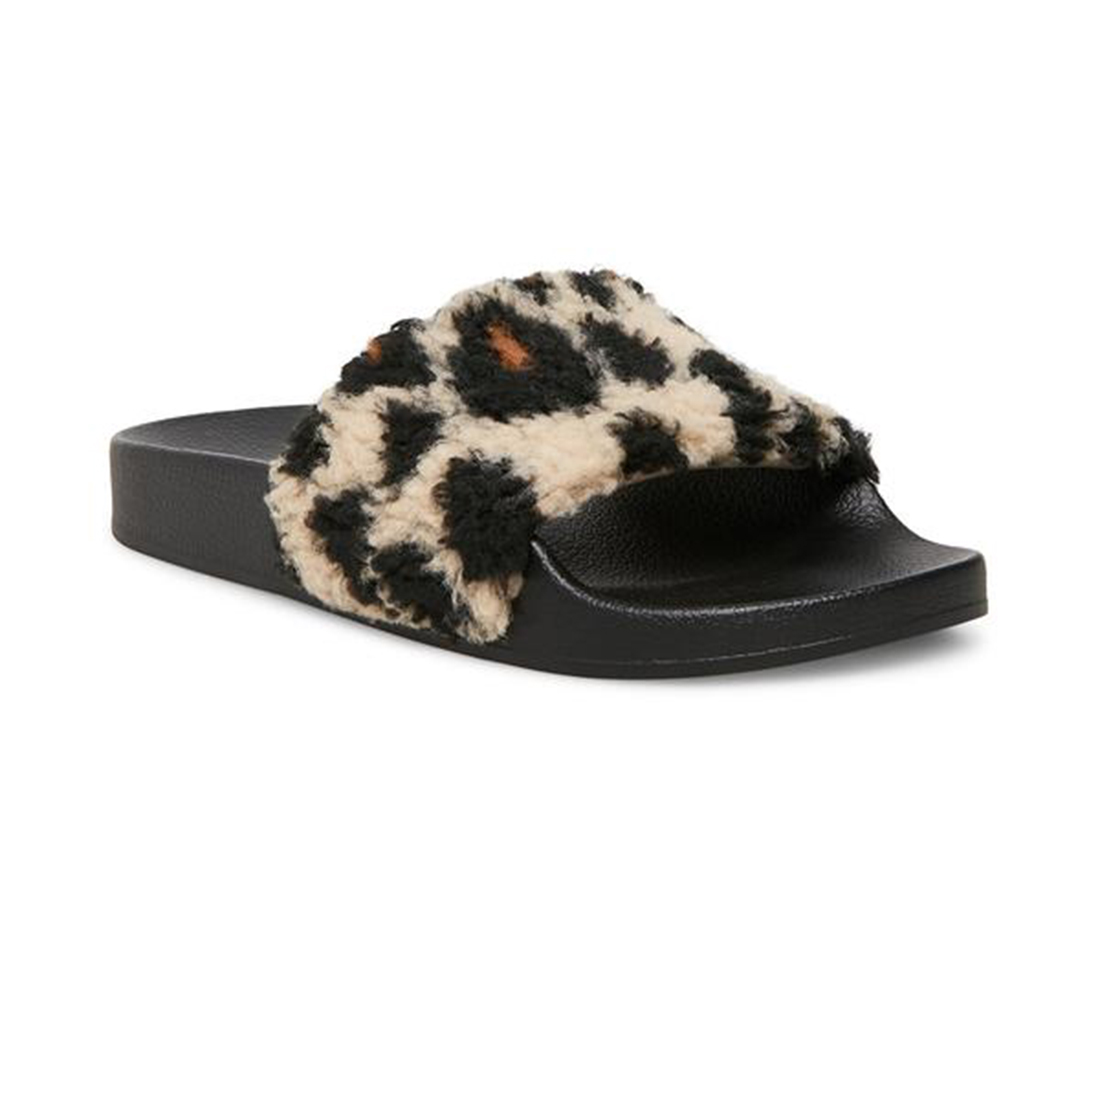 Steve Madden Shear Slipper In Leopard 75256